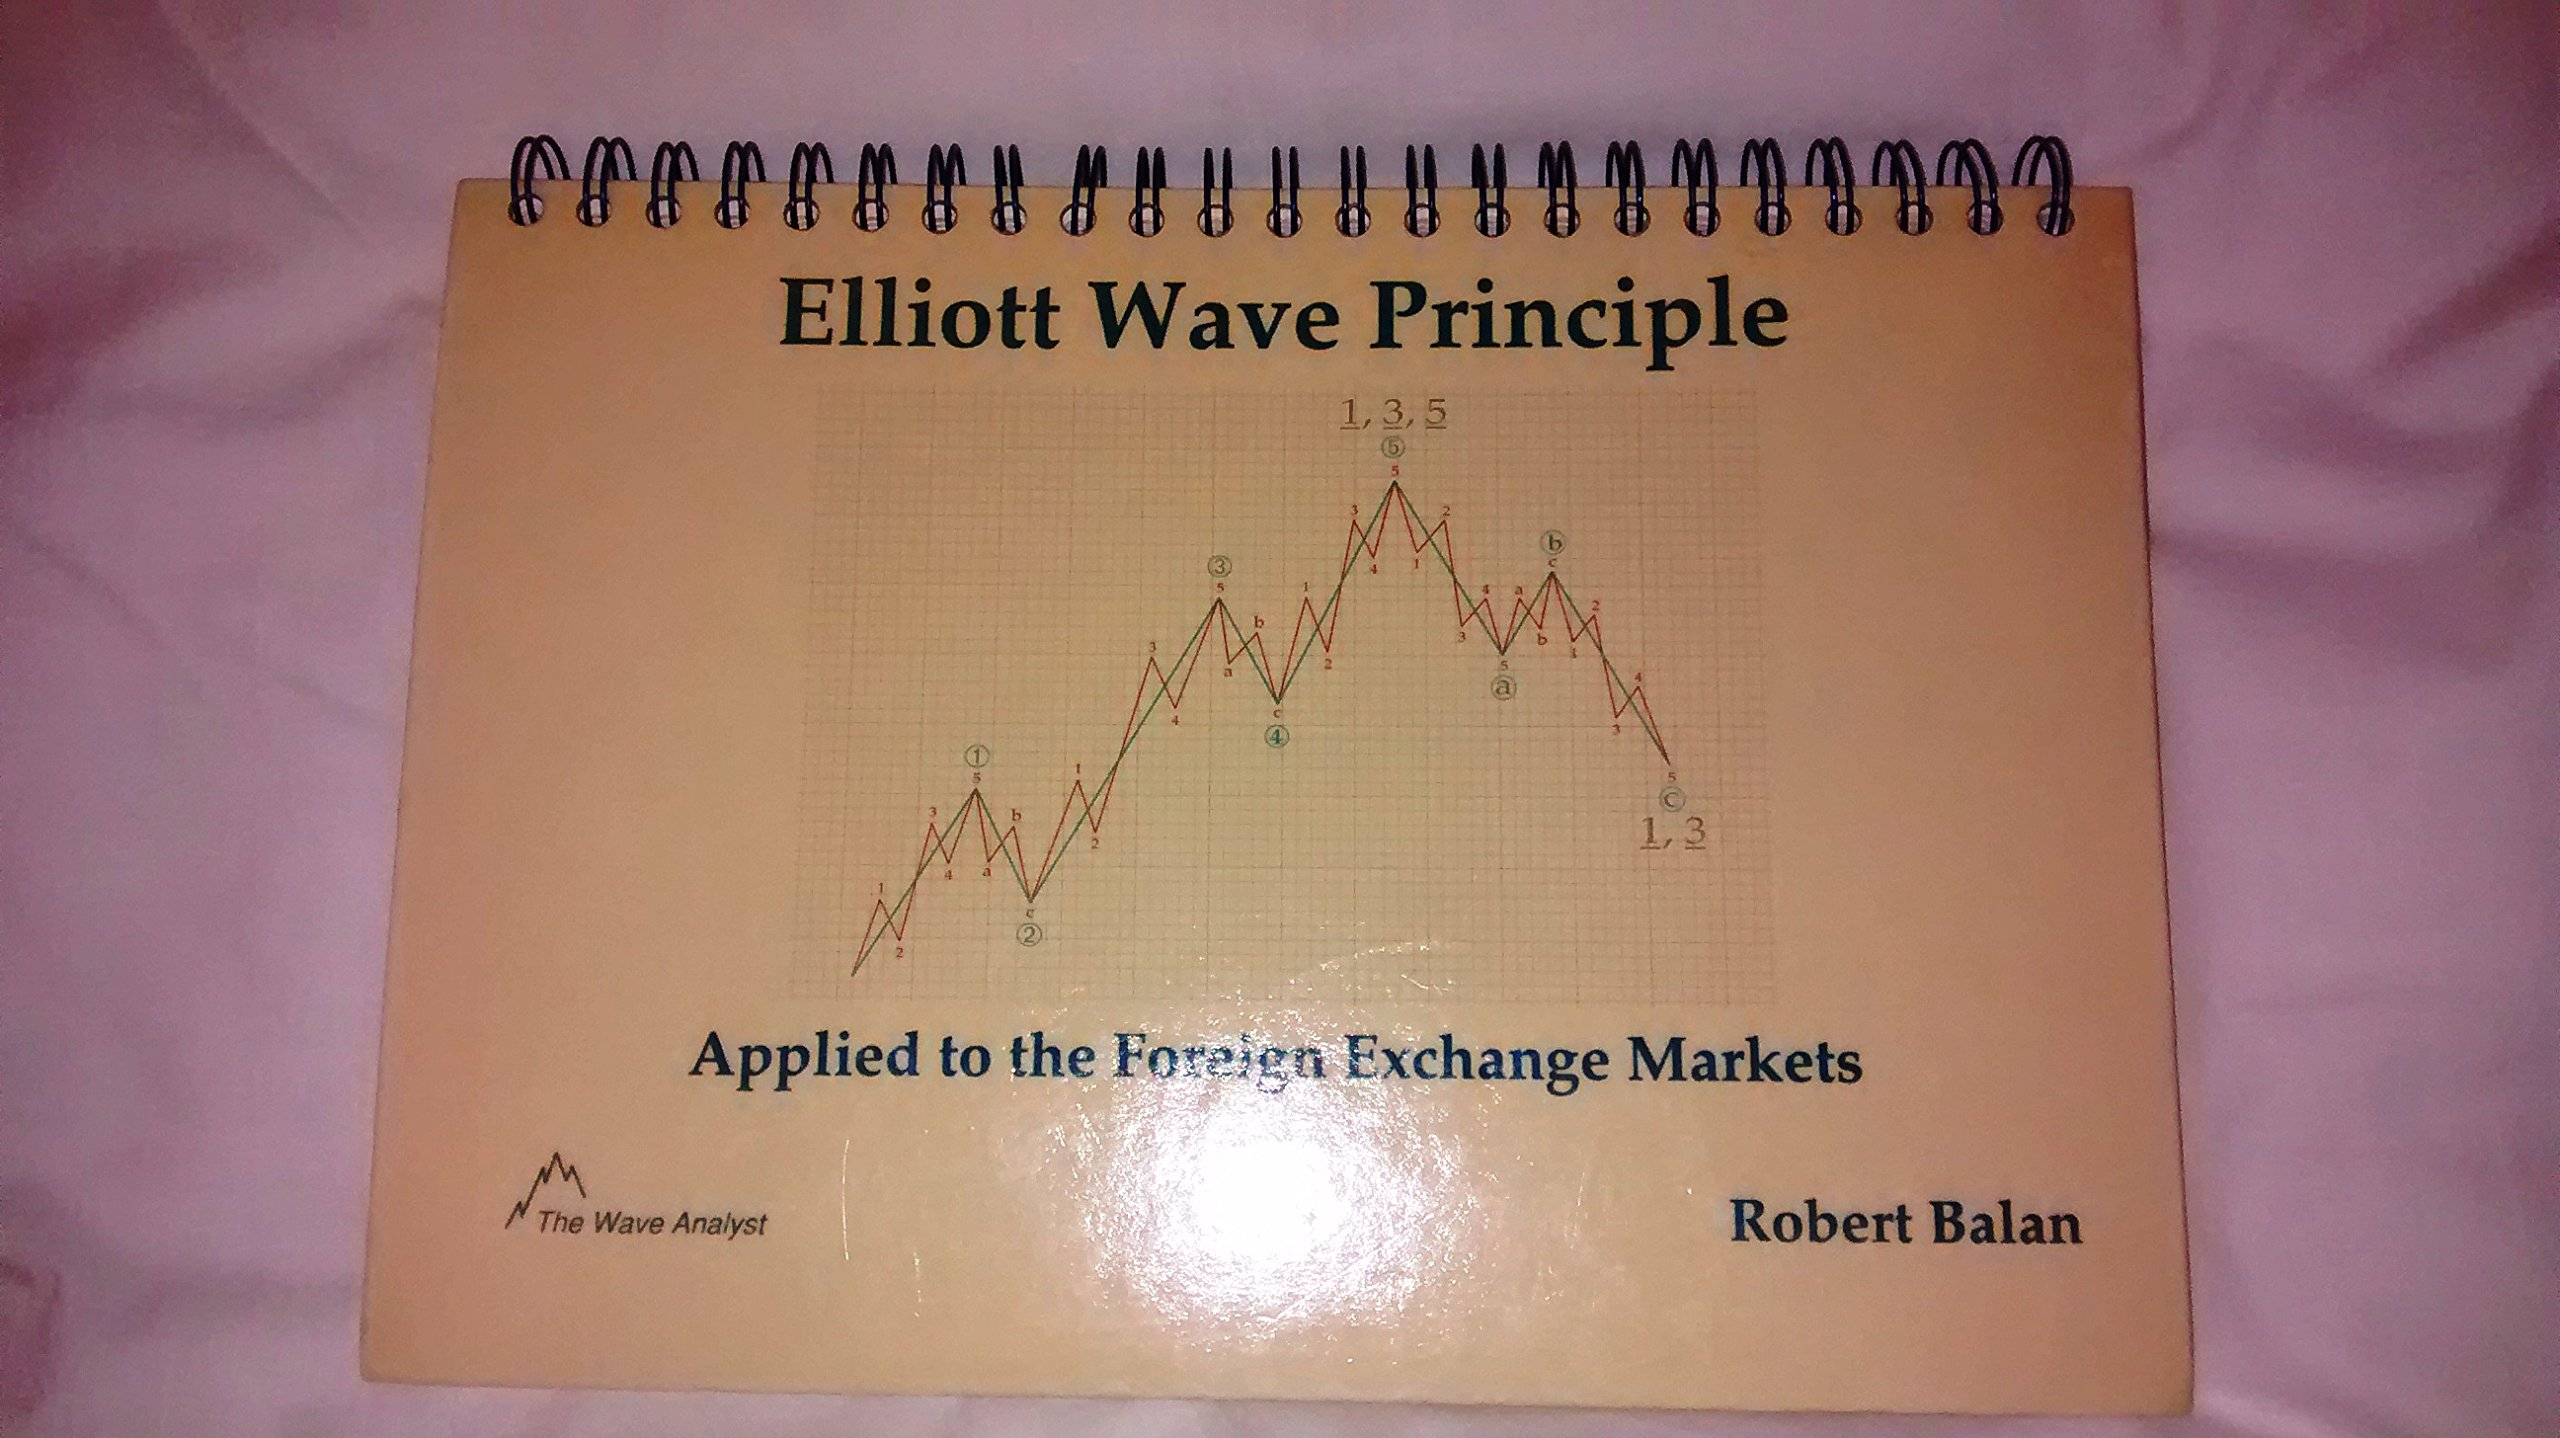 Elliott wave principle applied to the foreign exchange